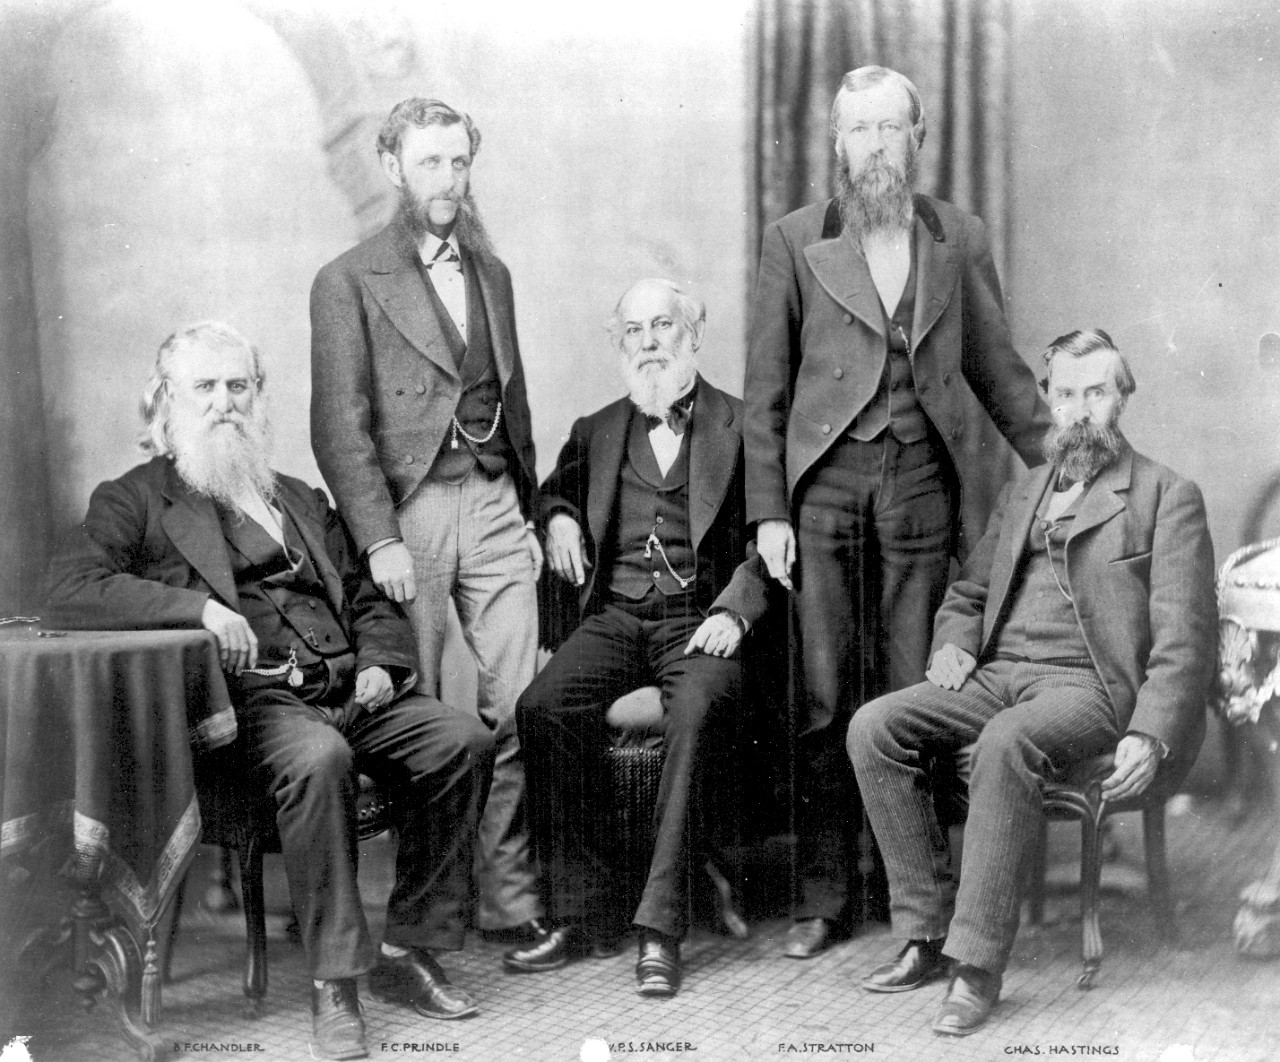 The first Navy Civil Engineer Corps officers: B.F. Chandler, F.C. Prindle, W.P.S. Sanger, F.A. Hastings, and Charles Hastings, c. 1860s. The Navy created the Civil Engineer Corps on March 2, 1867. The original duties of the Civil Engineer Corps included the charge, erection and repair of all buildings, docks, and wharves; supervising the architect, and directing all masters and other workers involved in building public works. Civil Engineer Corps officers were not required to wear a navy uniform until 1881 when the leaf insignia was created.